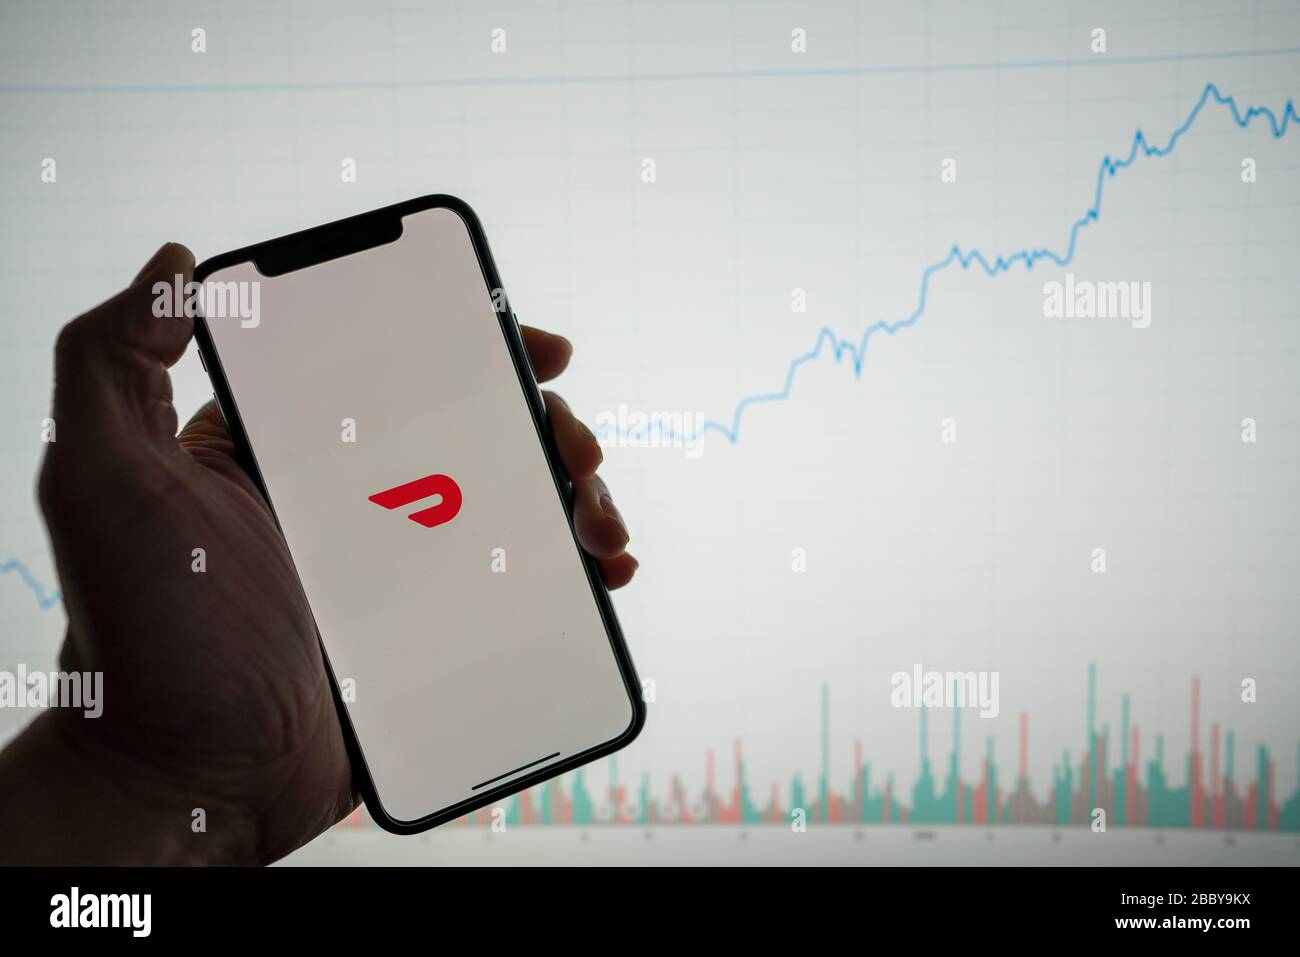 Doordash app on phone with white financial stock chart with price rising upward positive in background Stock Photo